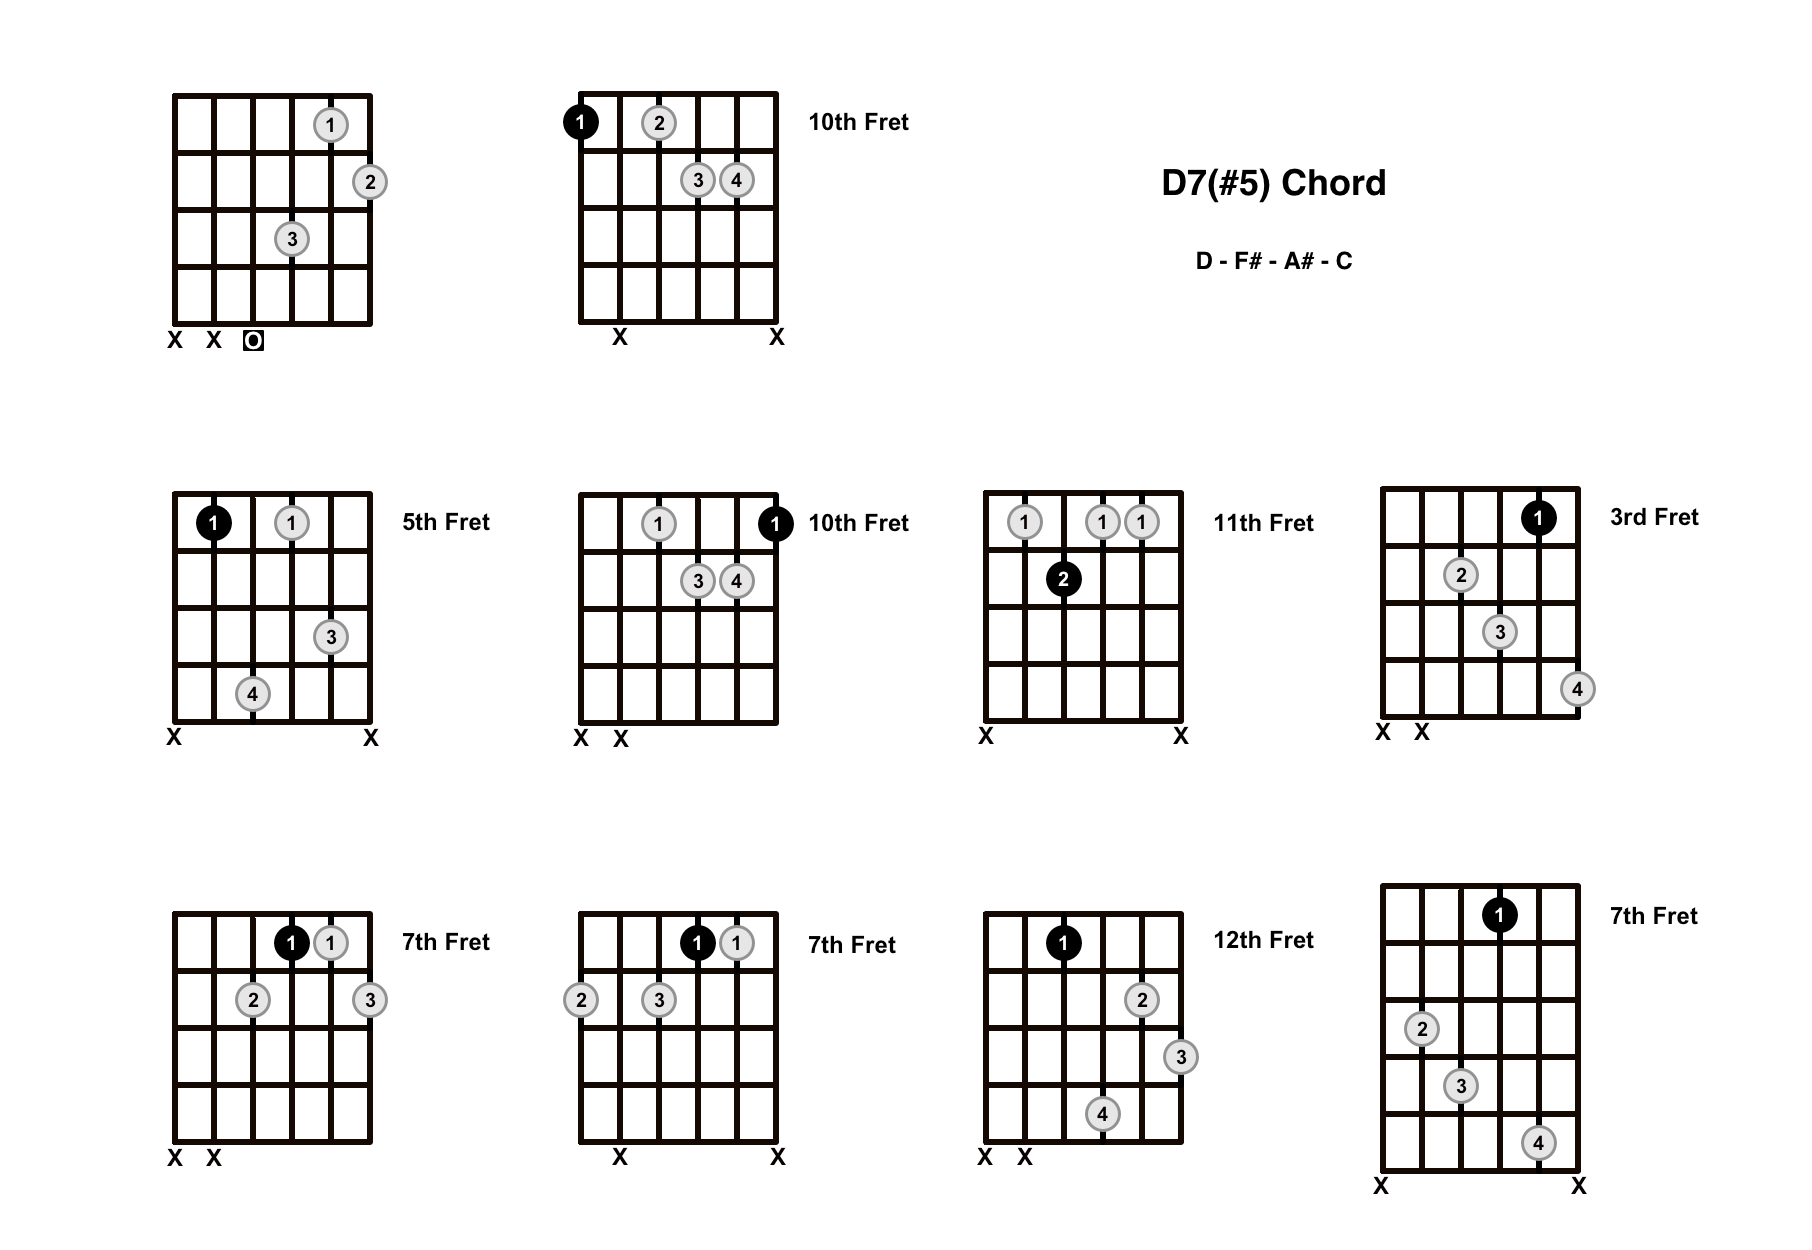 D Augmented 7 Chord On The Guitar (D7#5, D+7) – Diagrams, Finger Positions and Theory